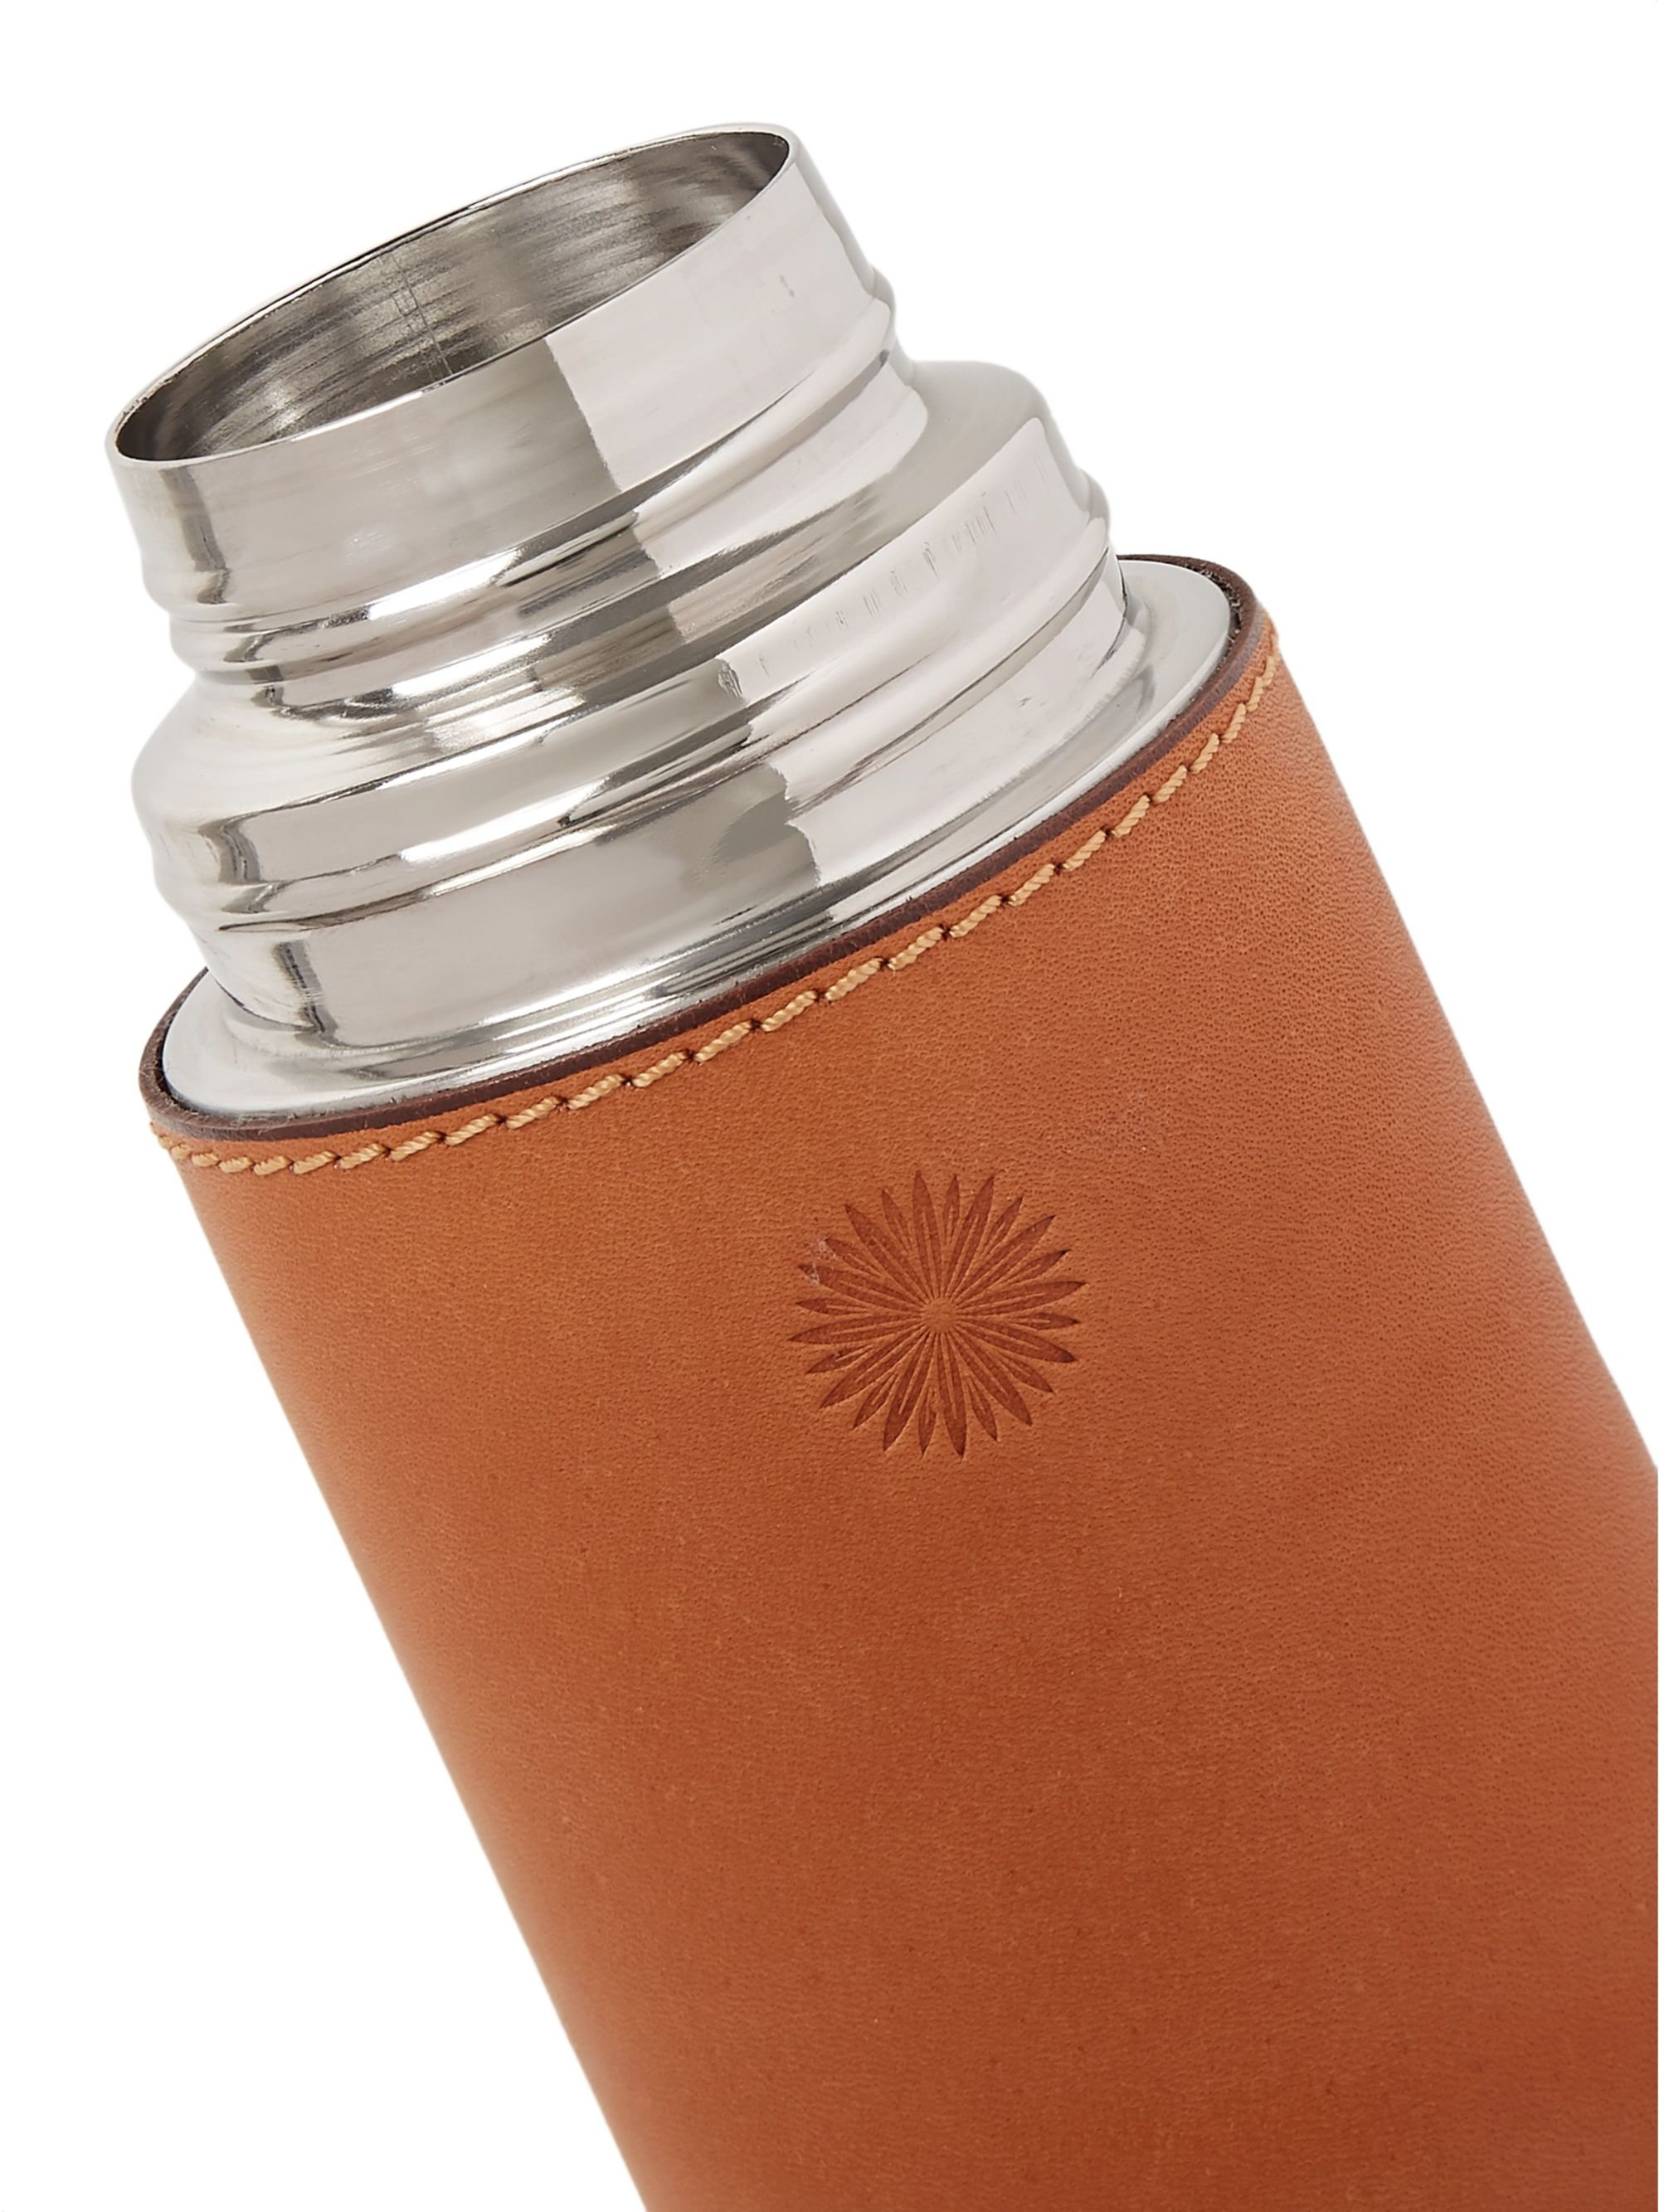 James Purdey & Sons Leather and Steel Flask